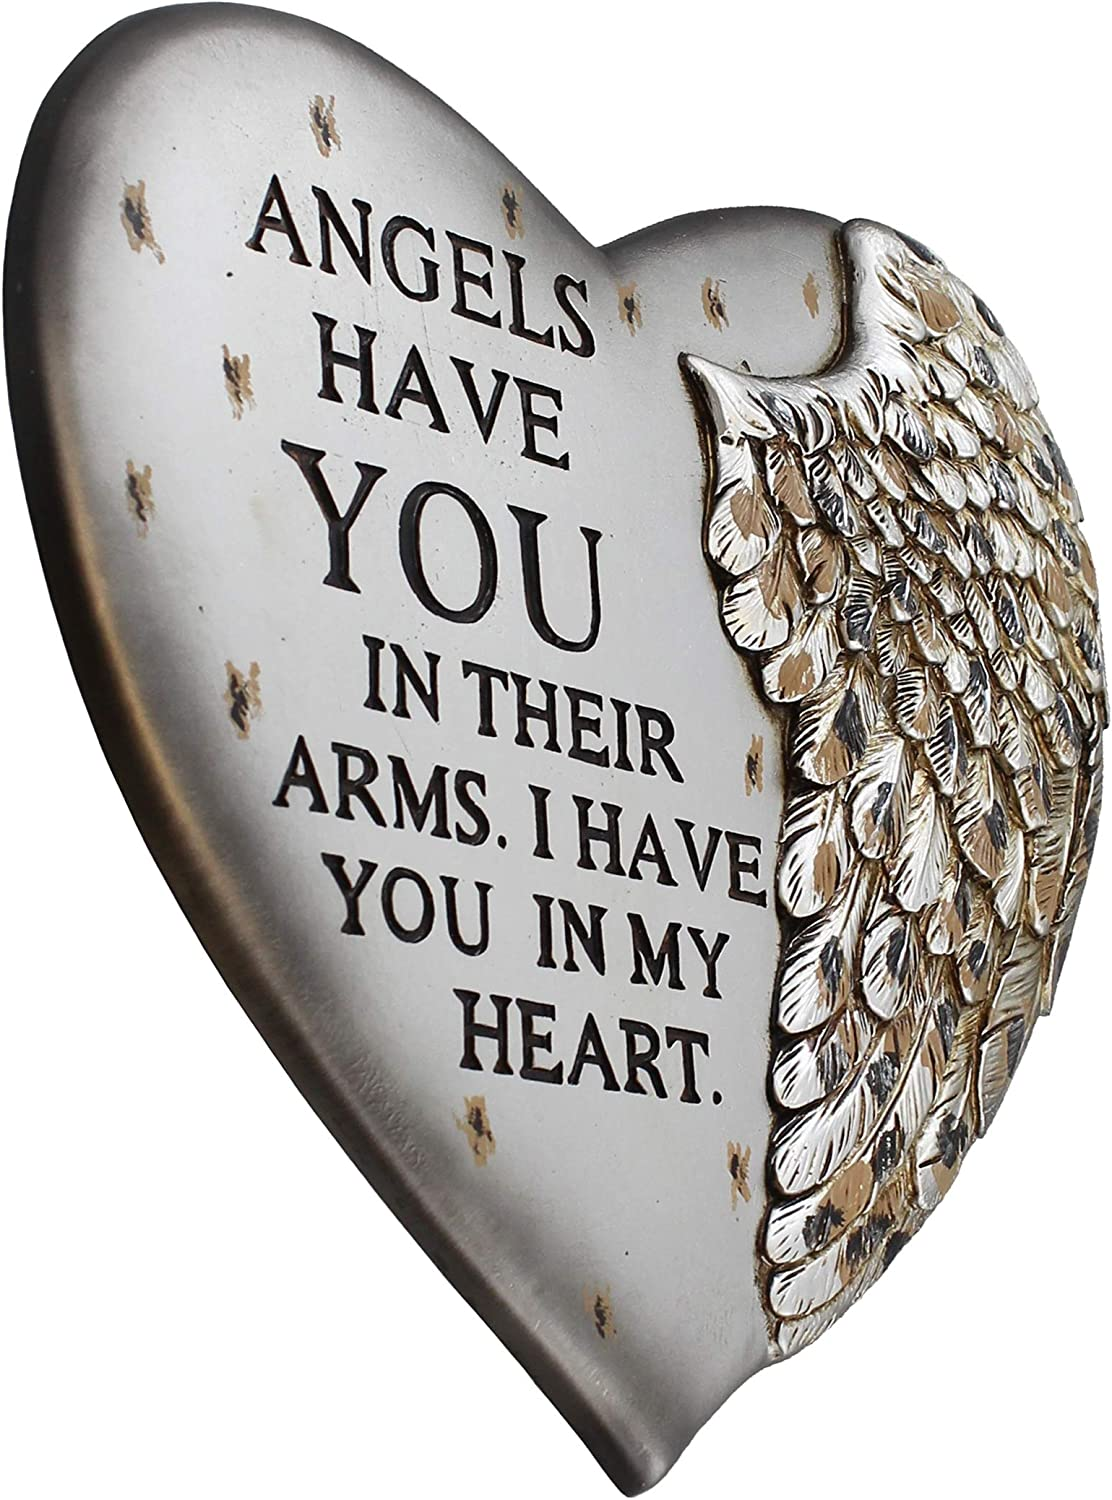 Angel Wing Heart Memorial Plaque - Wall & Garden - Angels Have You in Their Arms I Have You in My Heart